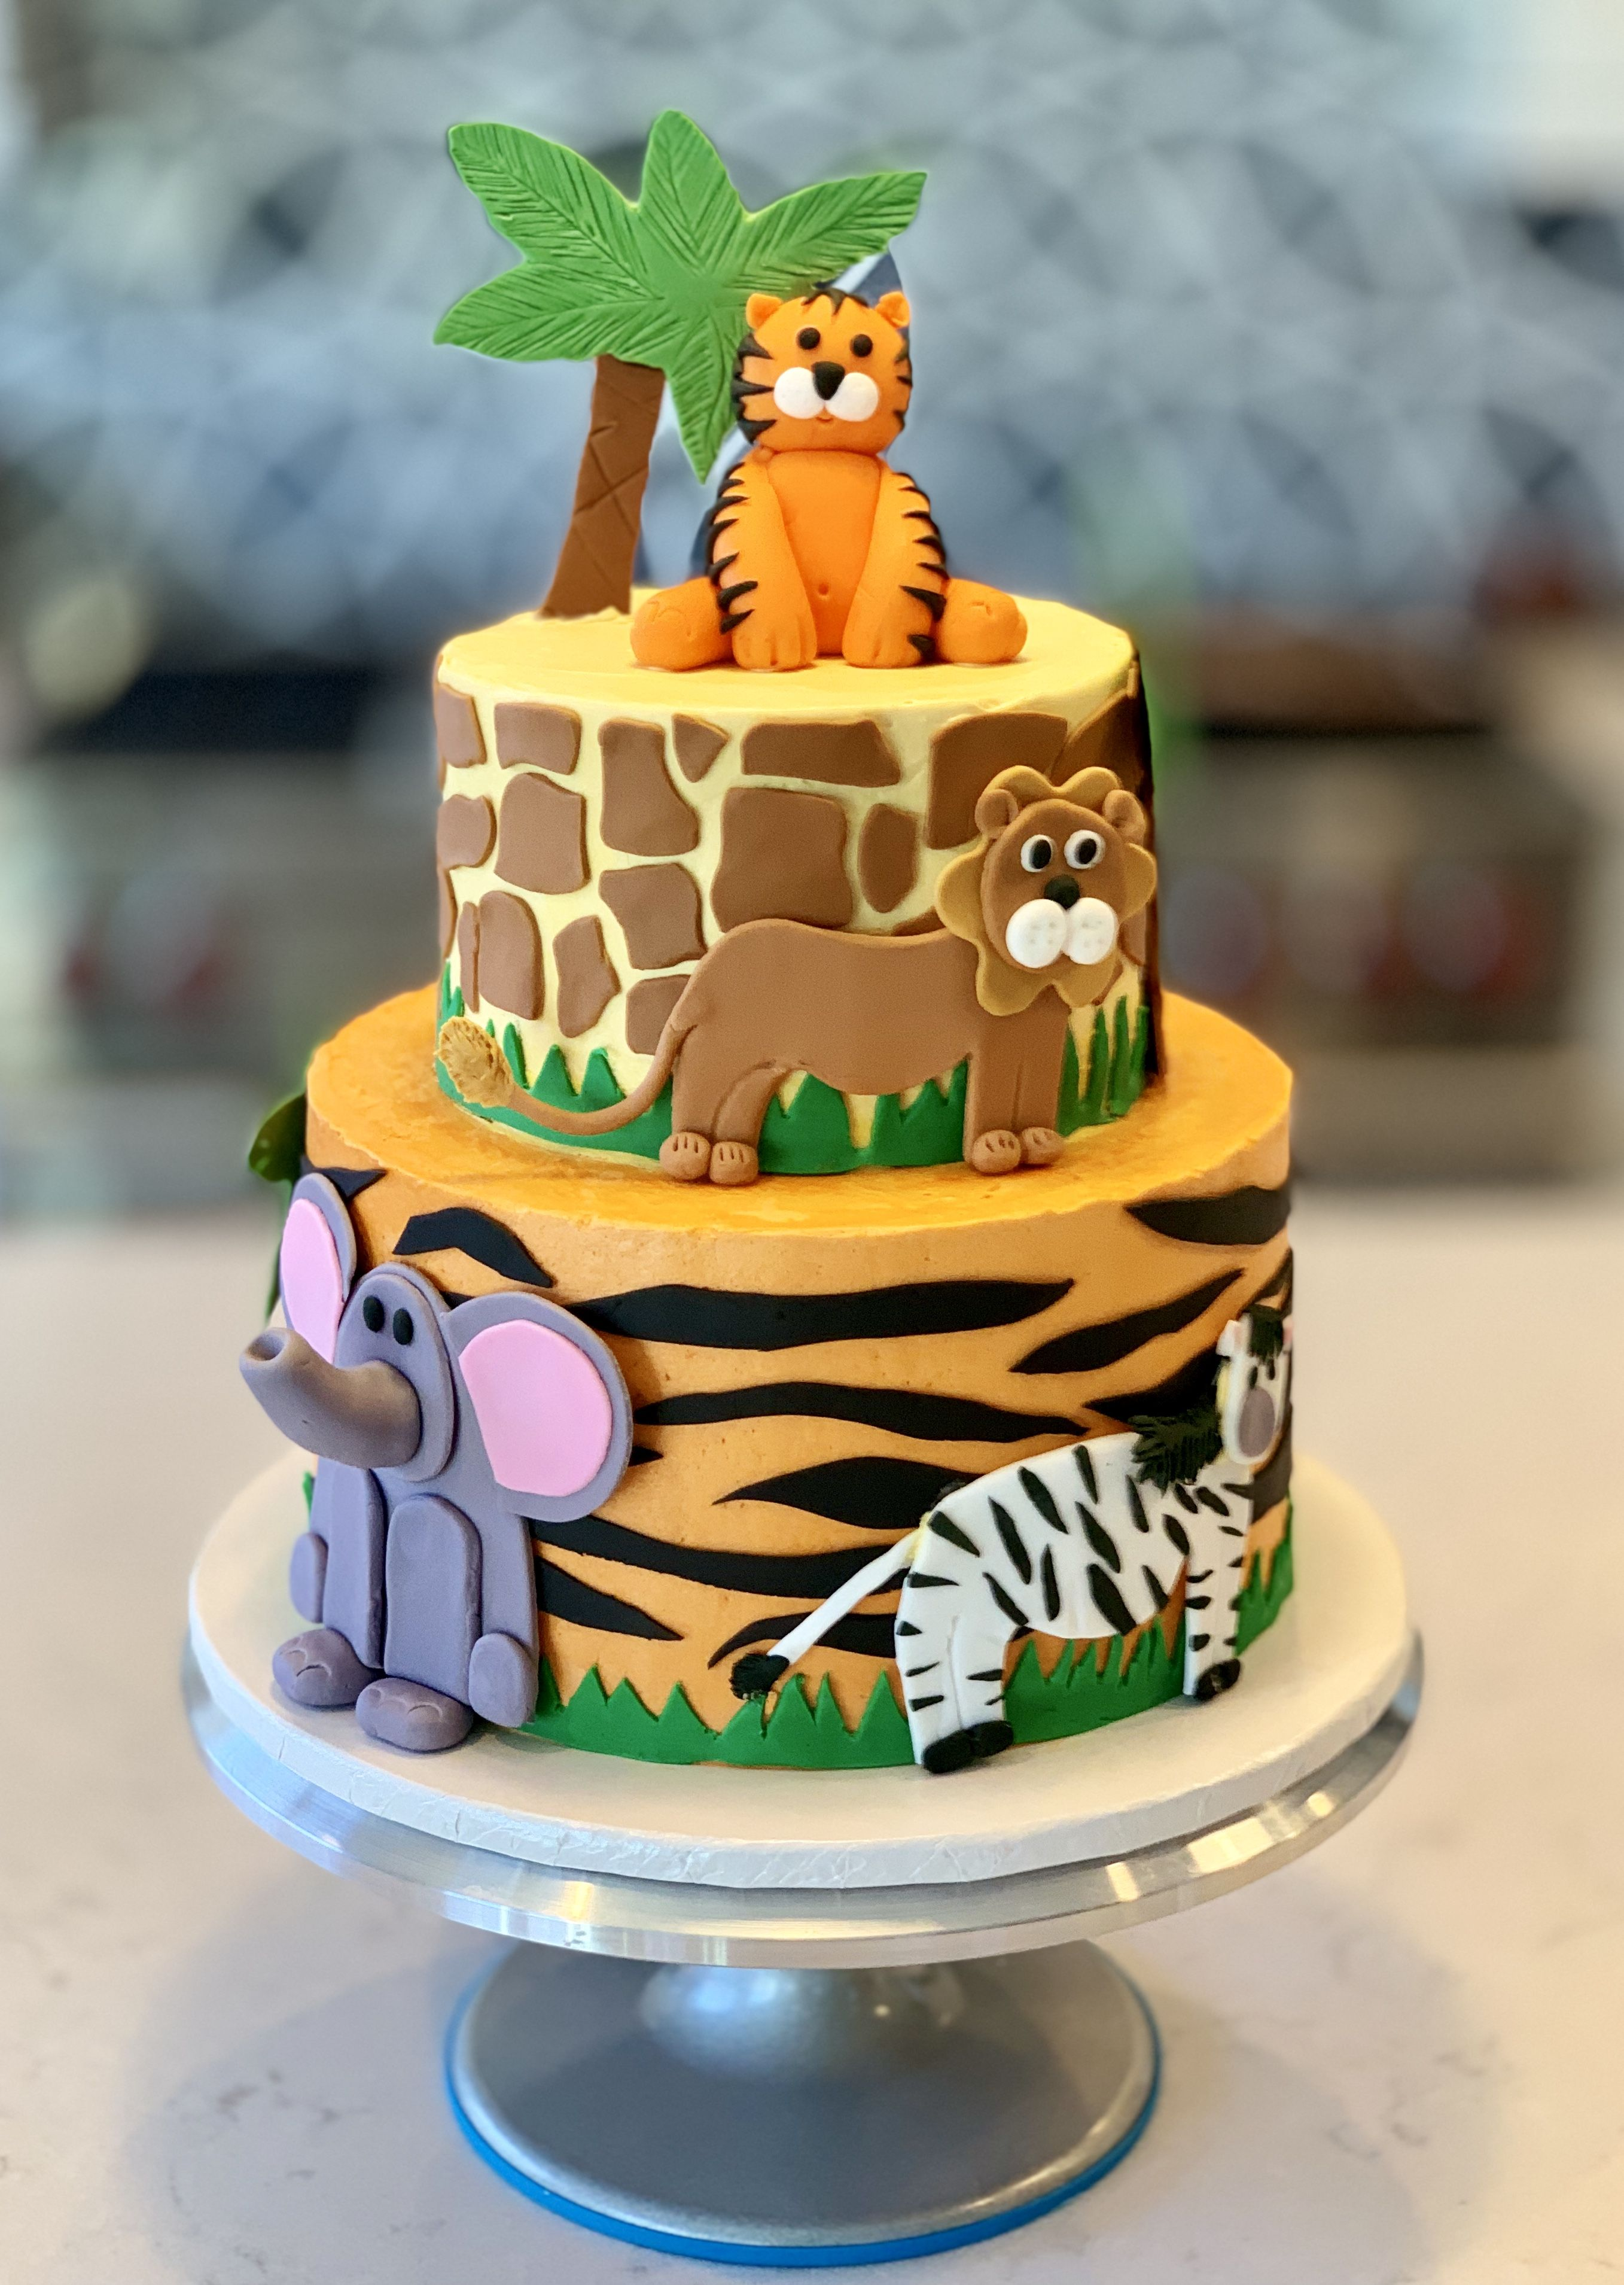 Adorable first birthday cake. Perfect for a little boy or girl ...